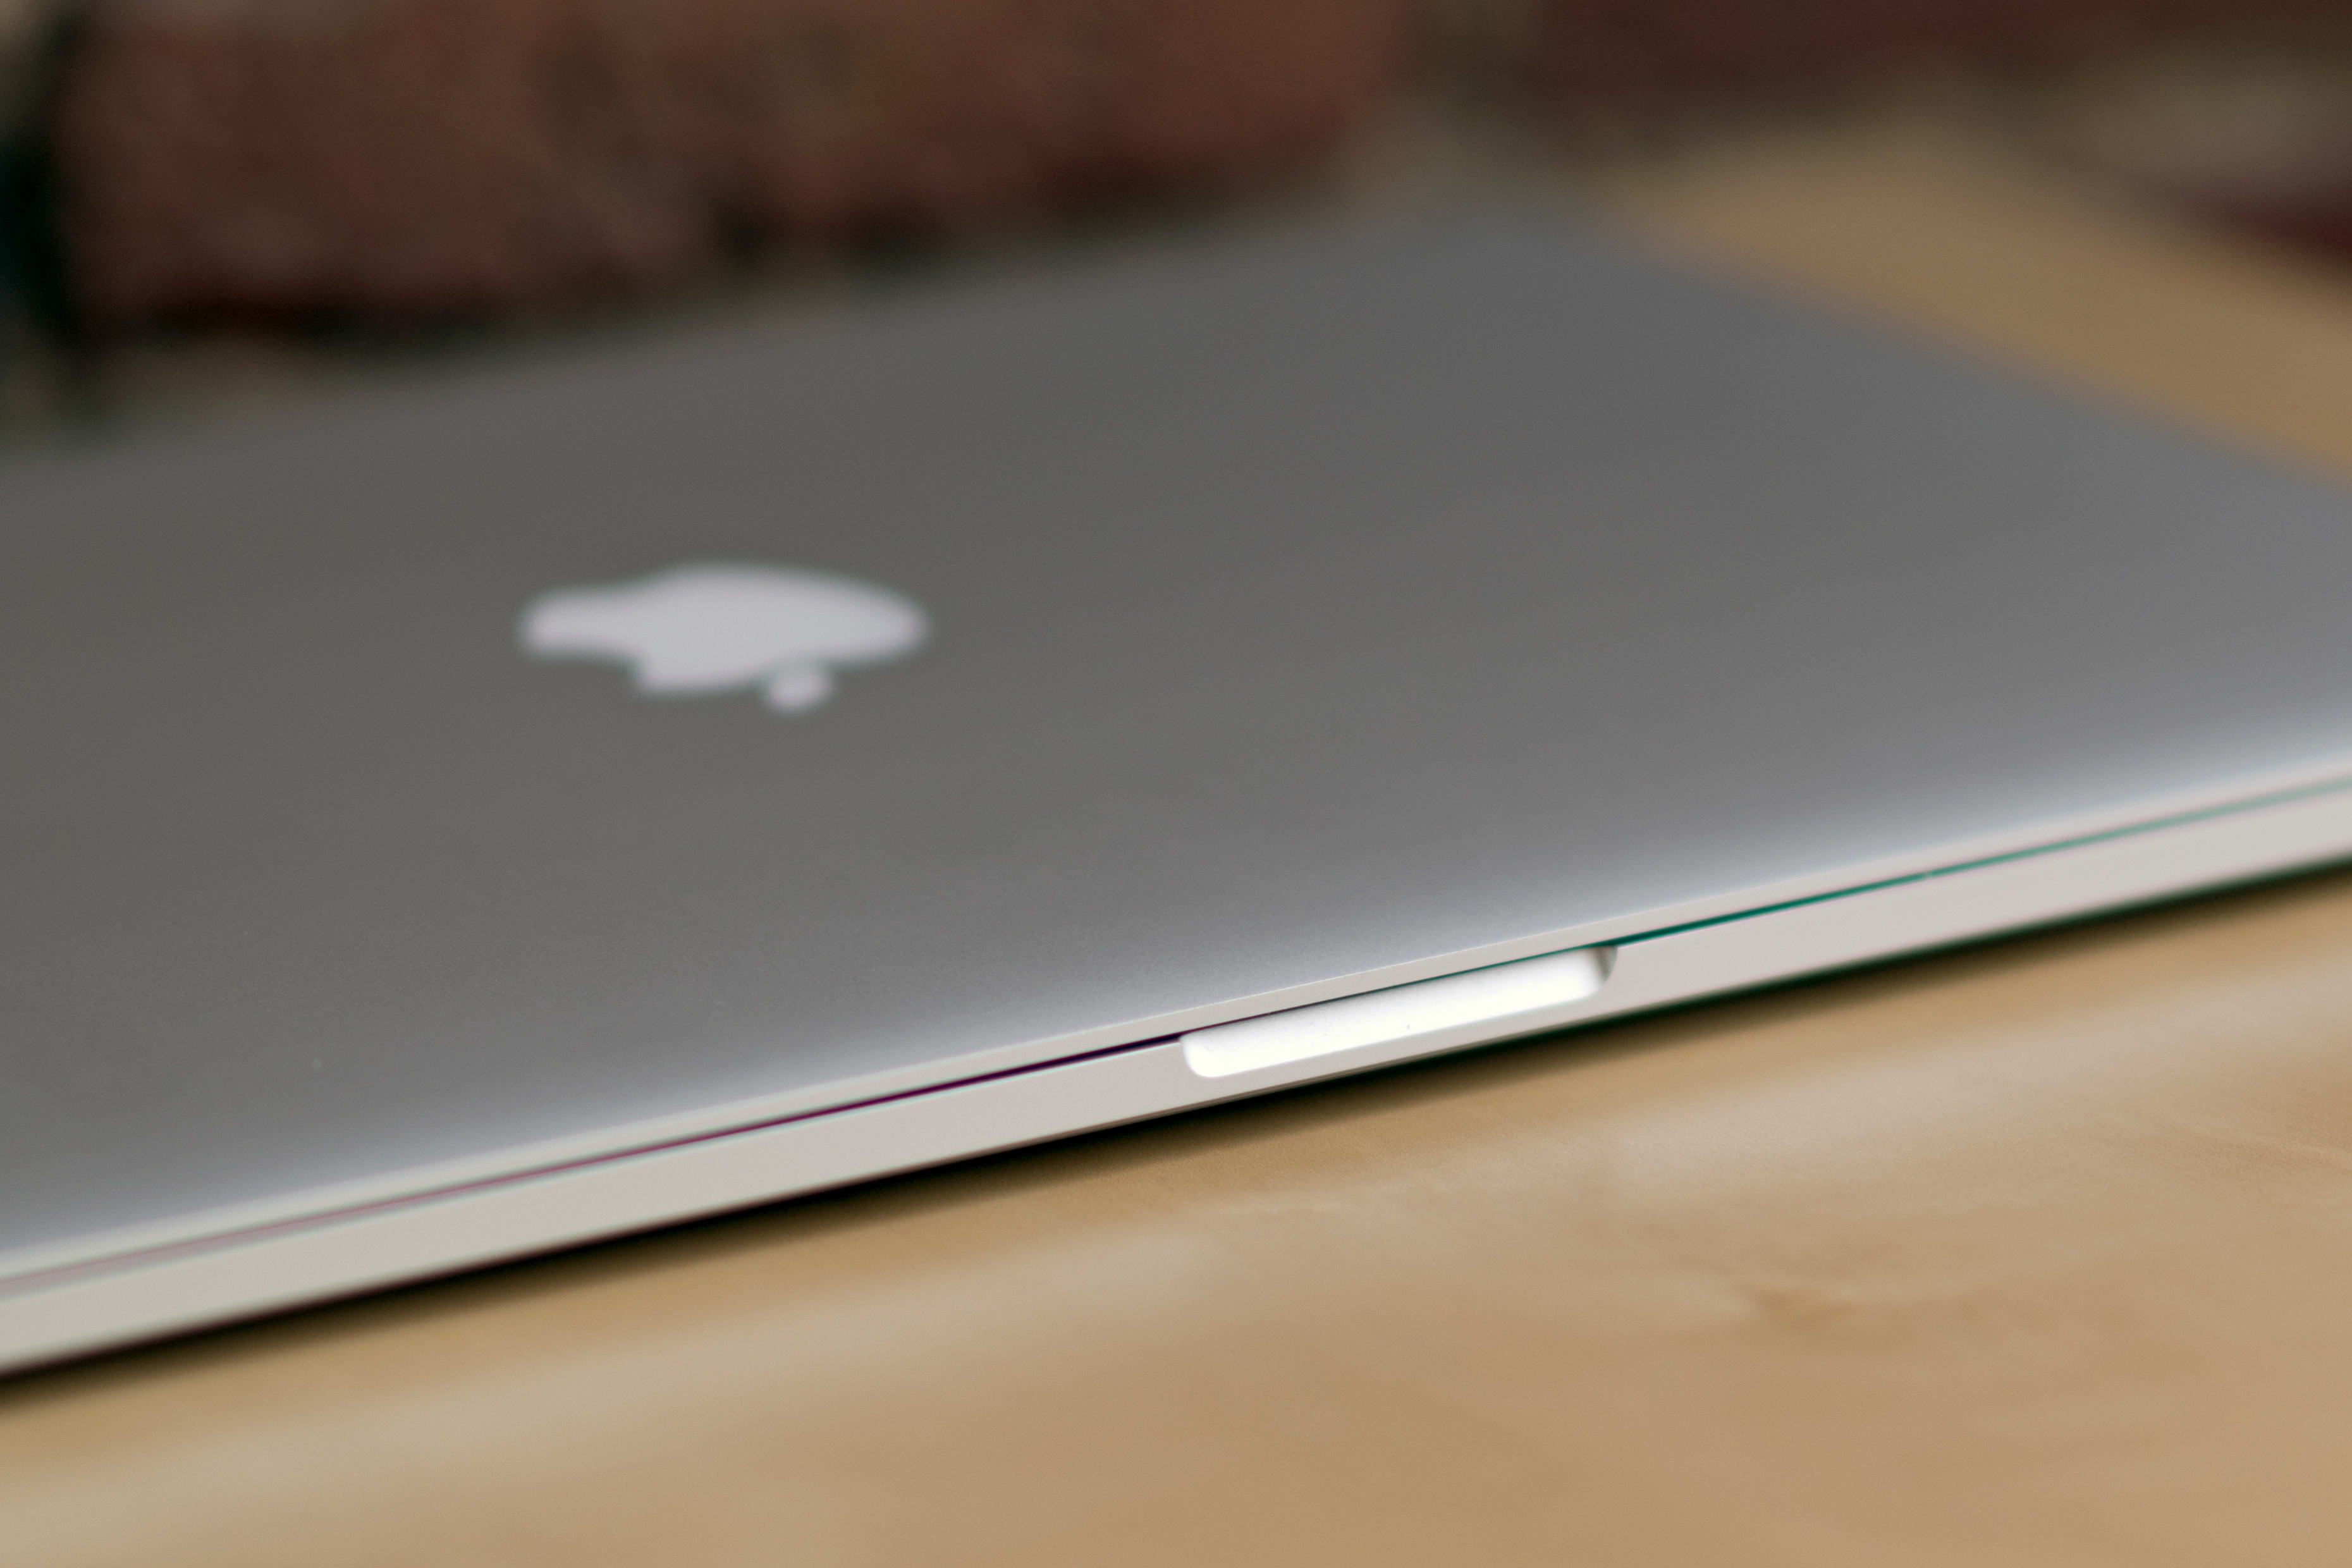 A closer look at the MacBook Pro with Retina Display's screen latch.